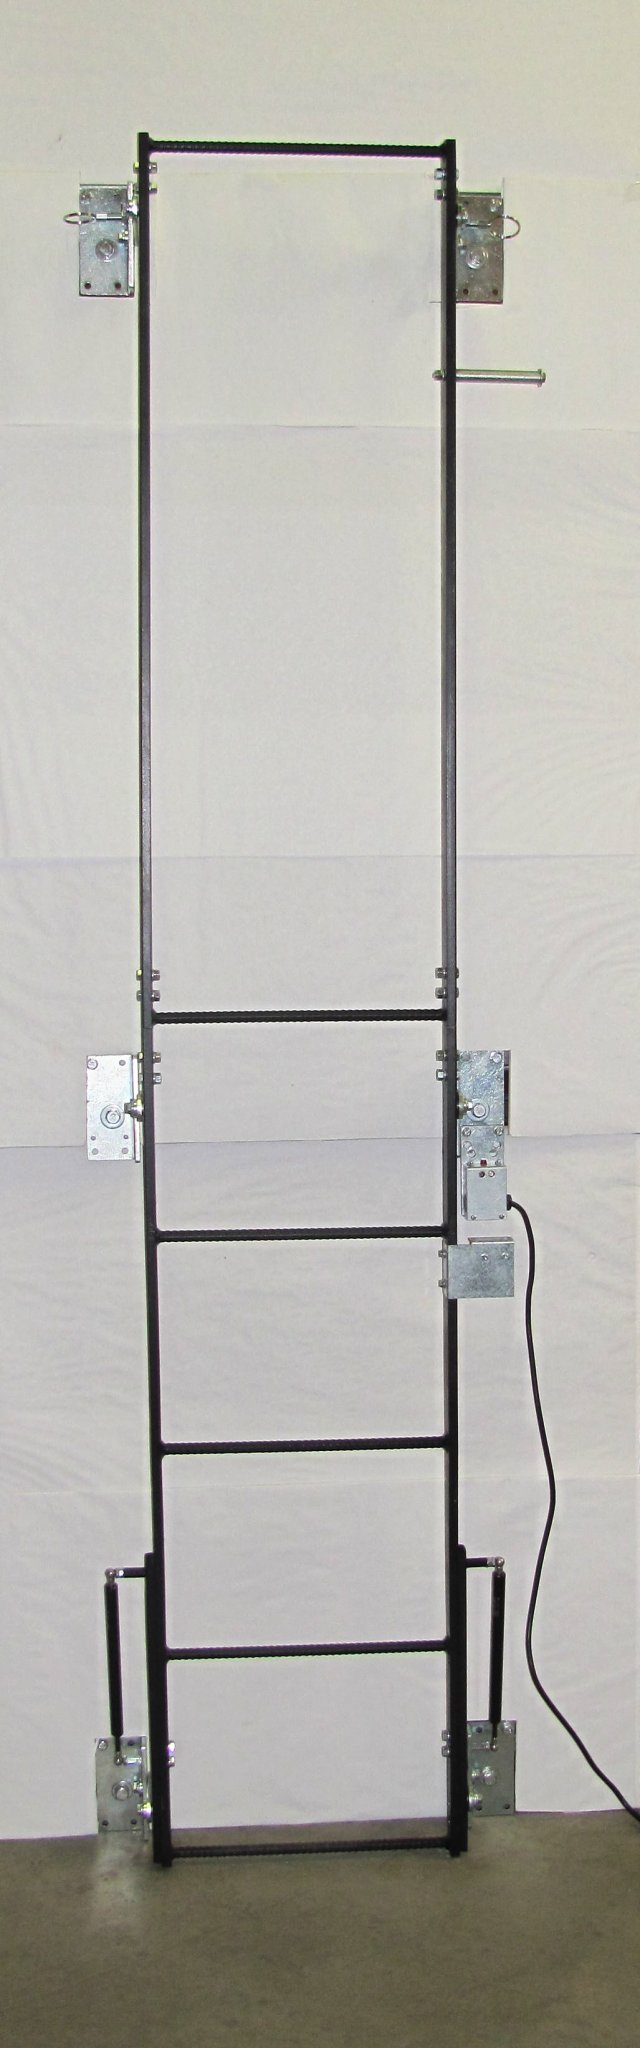 Image 0 of PLF - SPACESAVER FOLD-UP LADDER